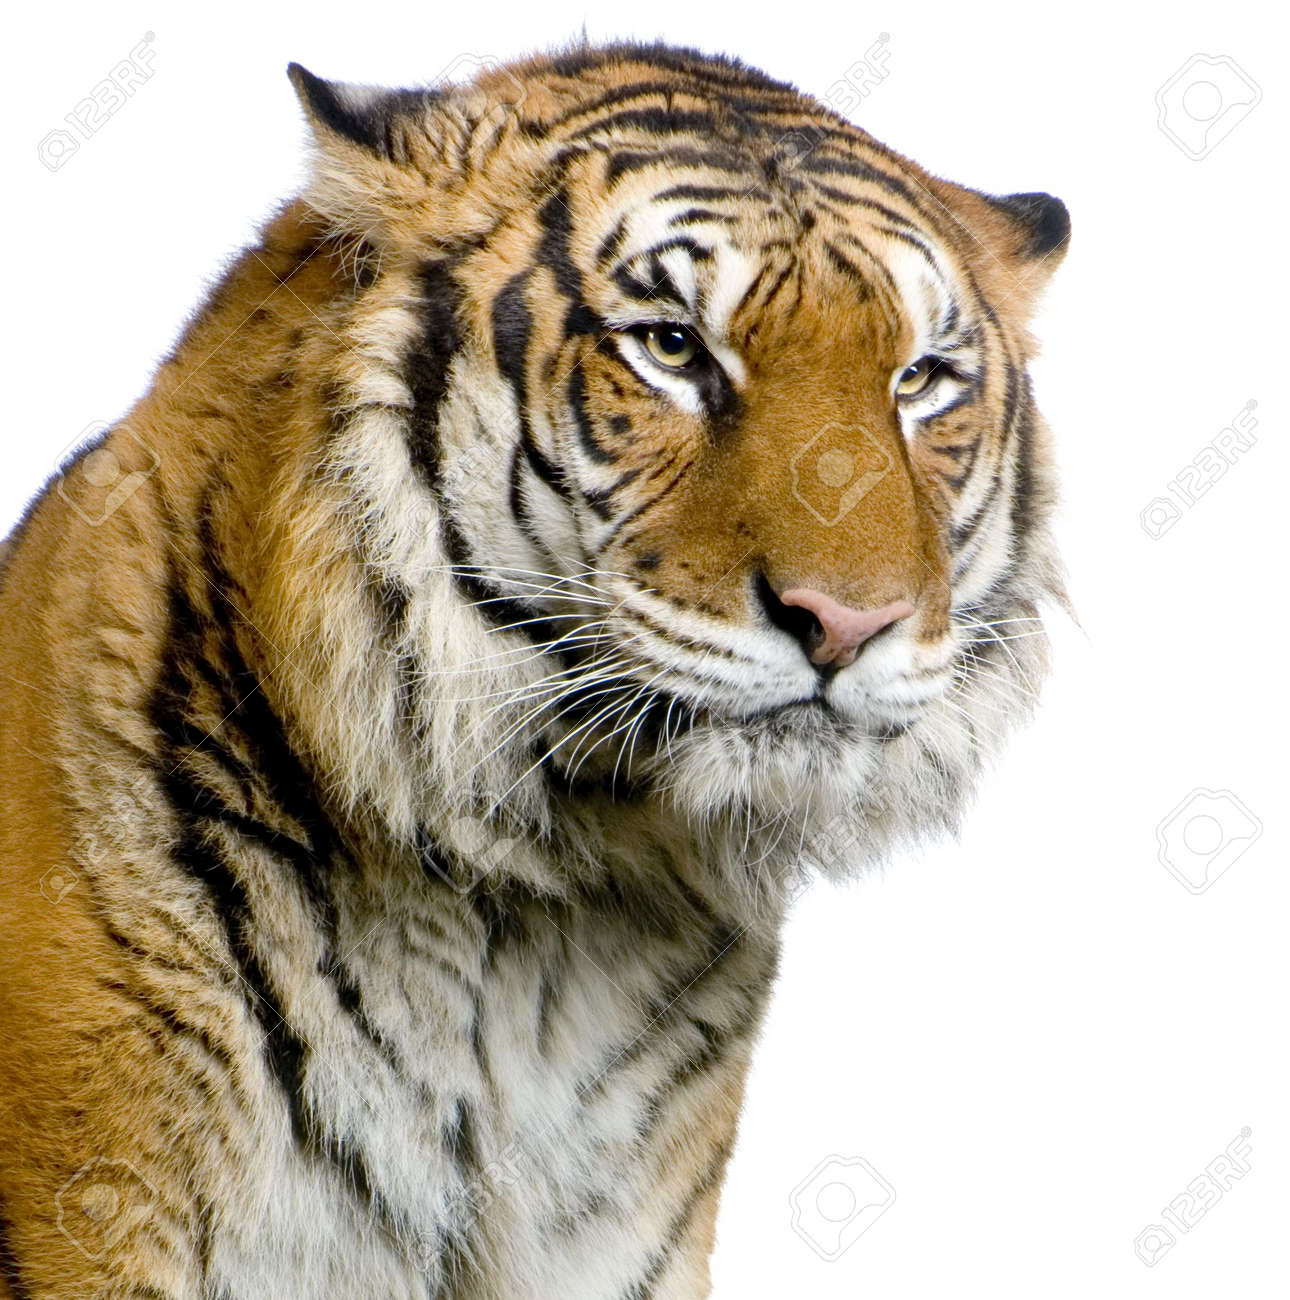 close up on a tiger u0027s face in front of a white background all